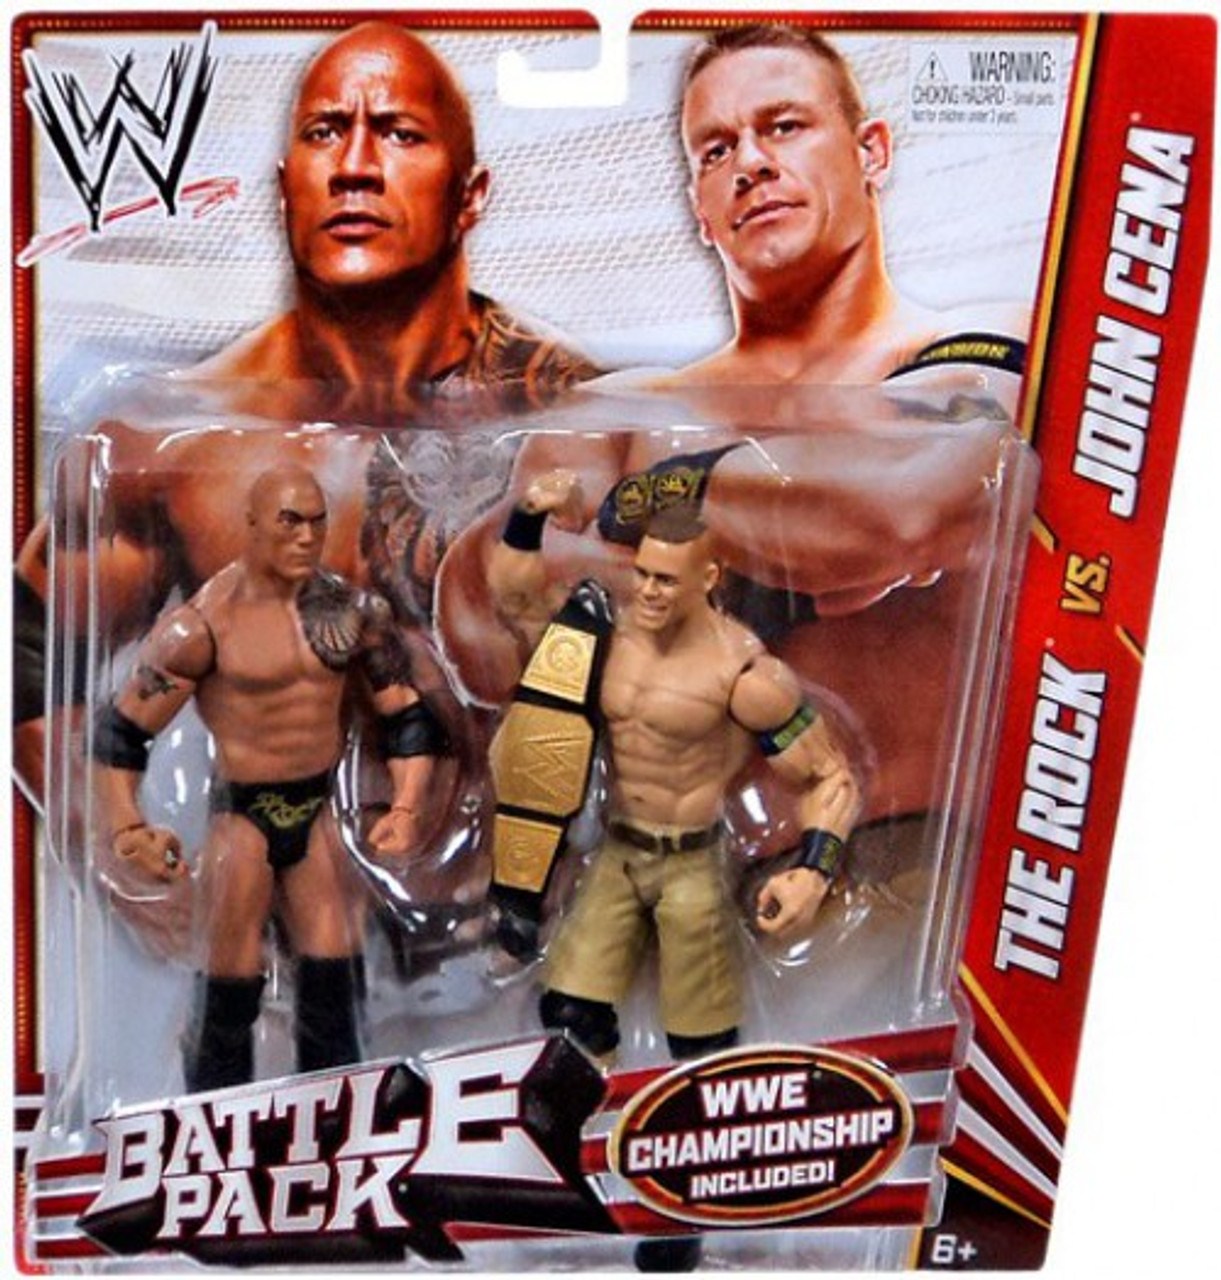 WWE Wrestling Battle Pack Series 24 The Rock vs  John Cena Action Figure  2-Pack [WWE Championship]